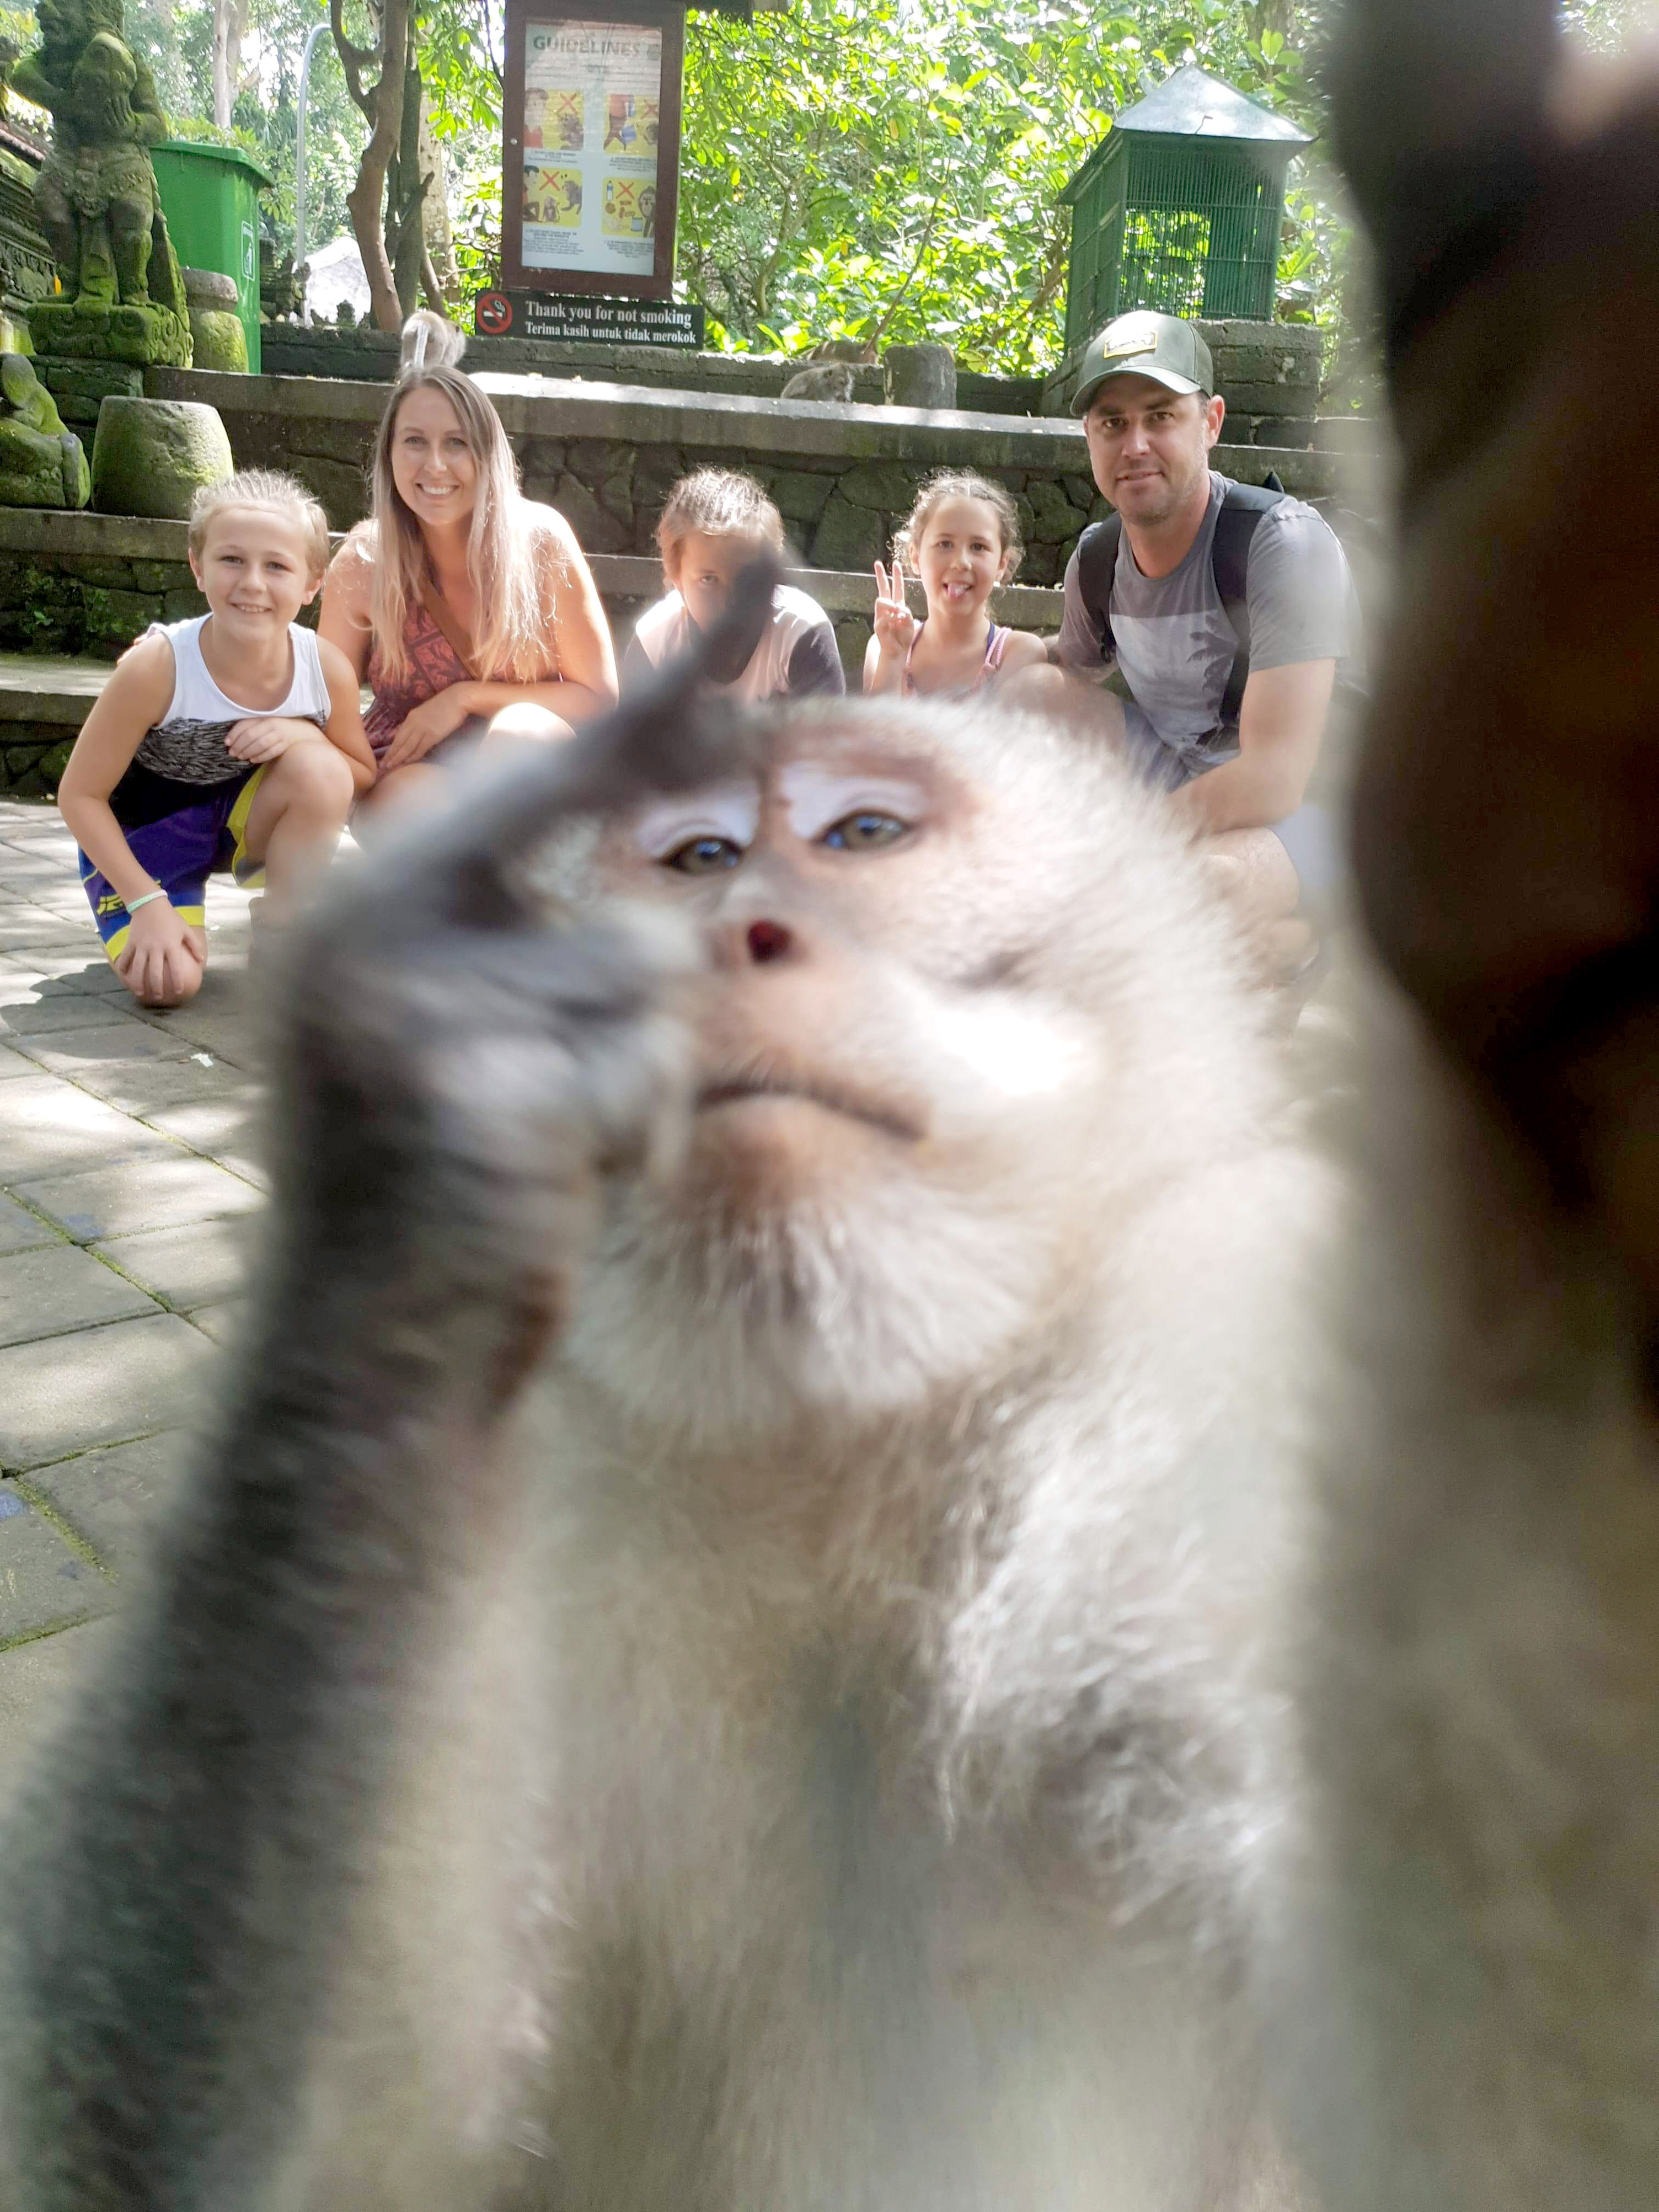 Nothing says taking the piss quite like a monkey giving you the finger. Credit: Storytrender